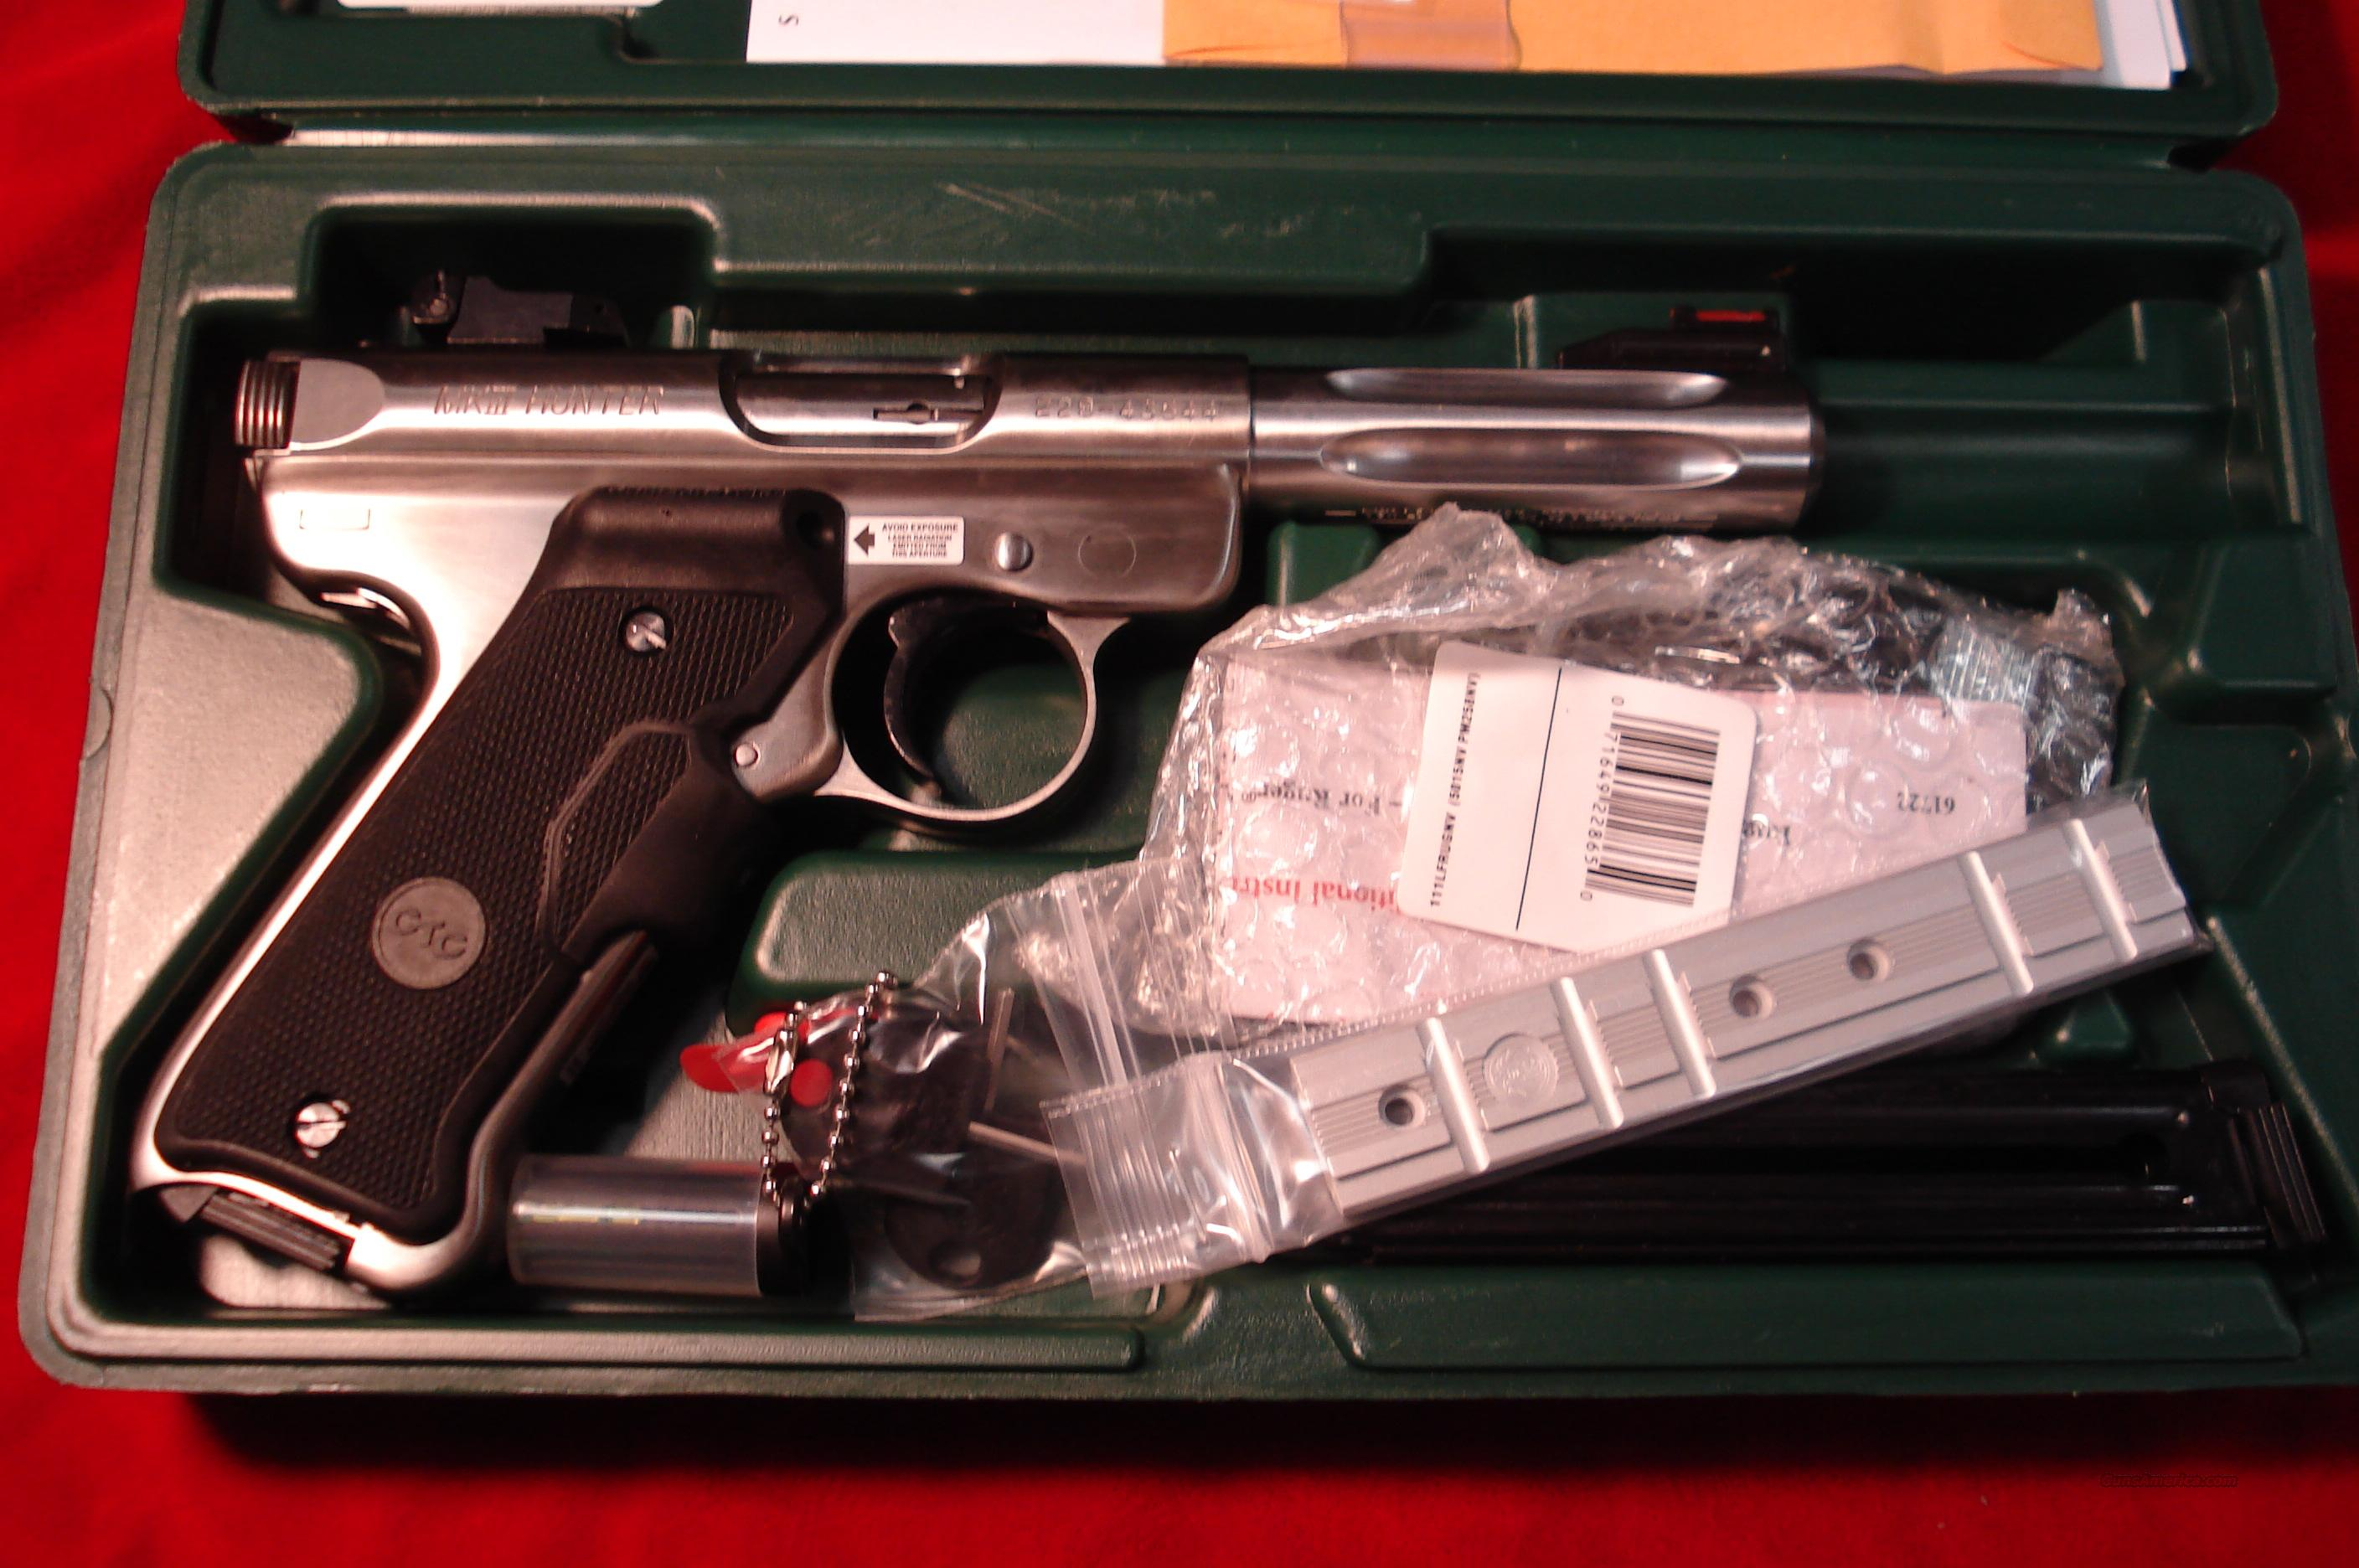 "RUGER MKIII  HUNTER 4.5"" STAINLESS W/CRIMSON TRACE GRIPS NEW   (KMKIII45HCL)   Guns > Pistols > Ruger Semi-Auto Pistols > Mark I & II Family"